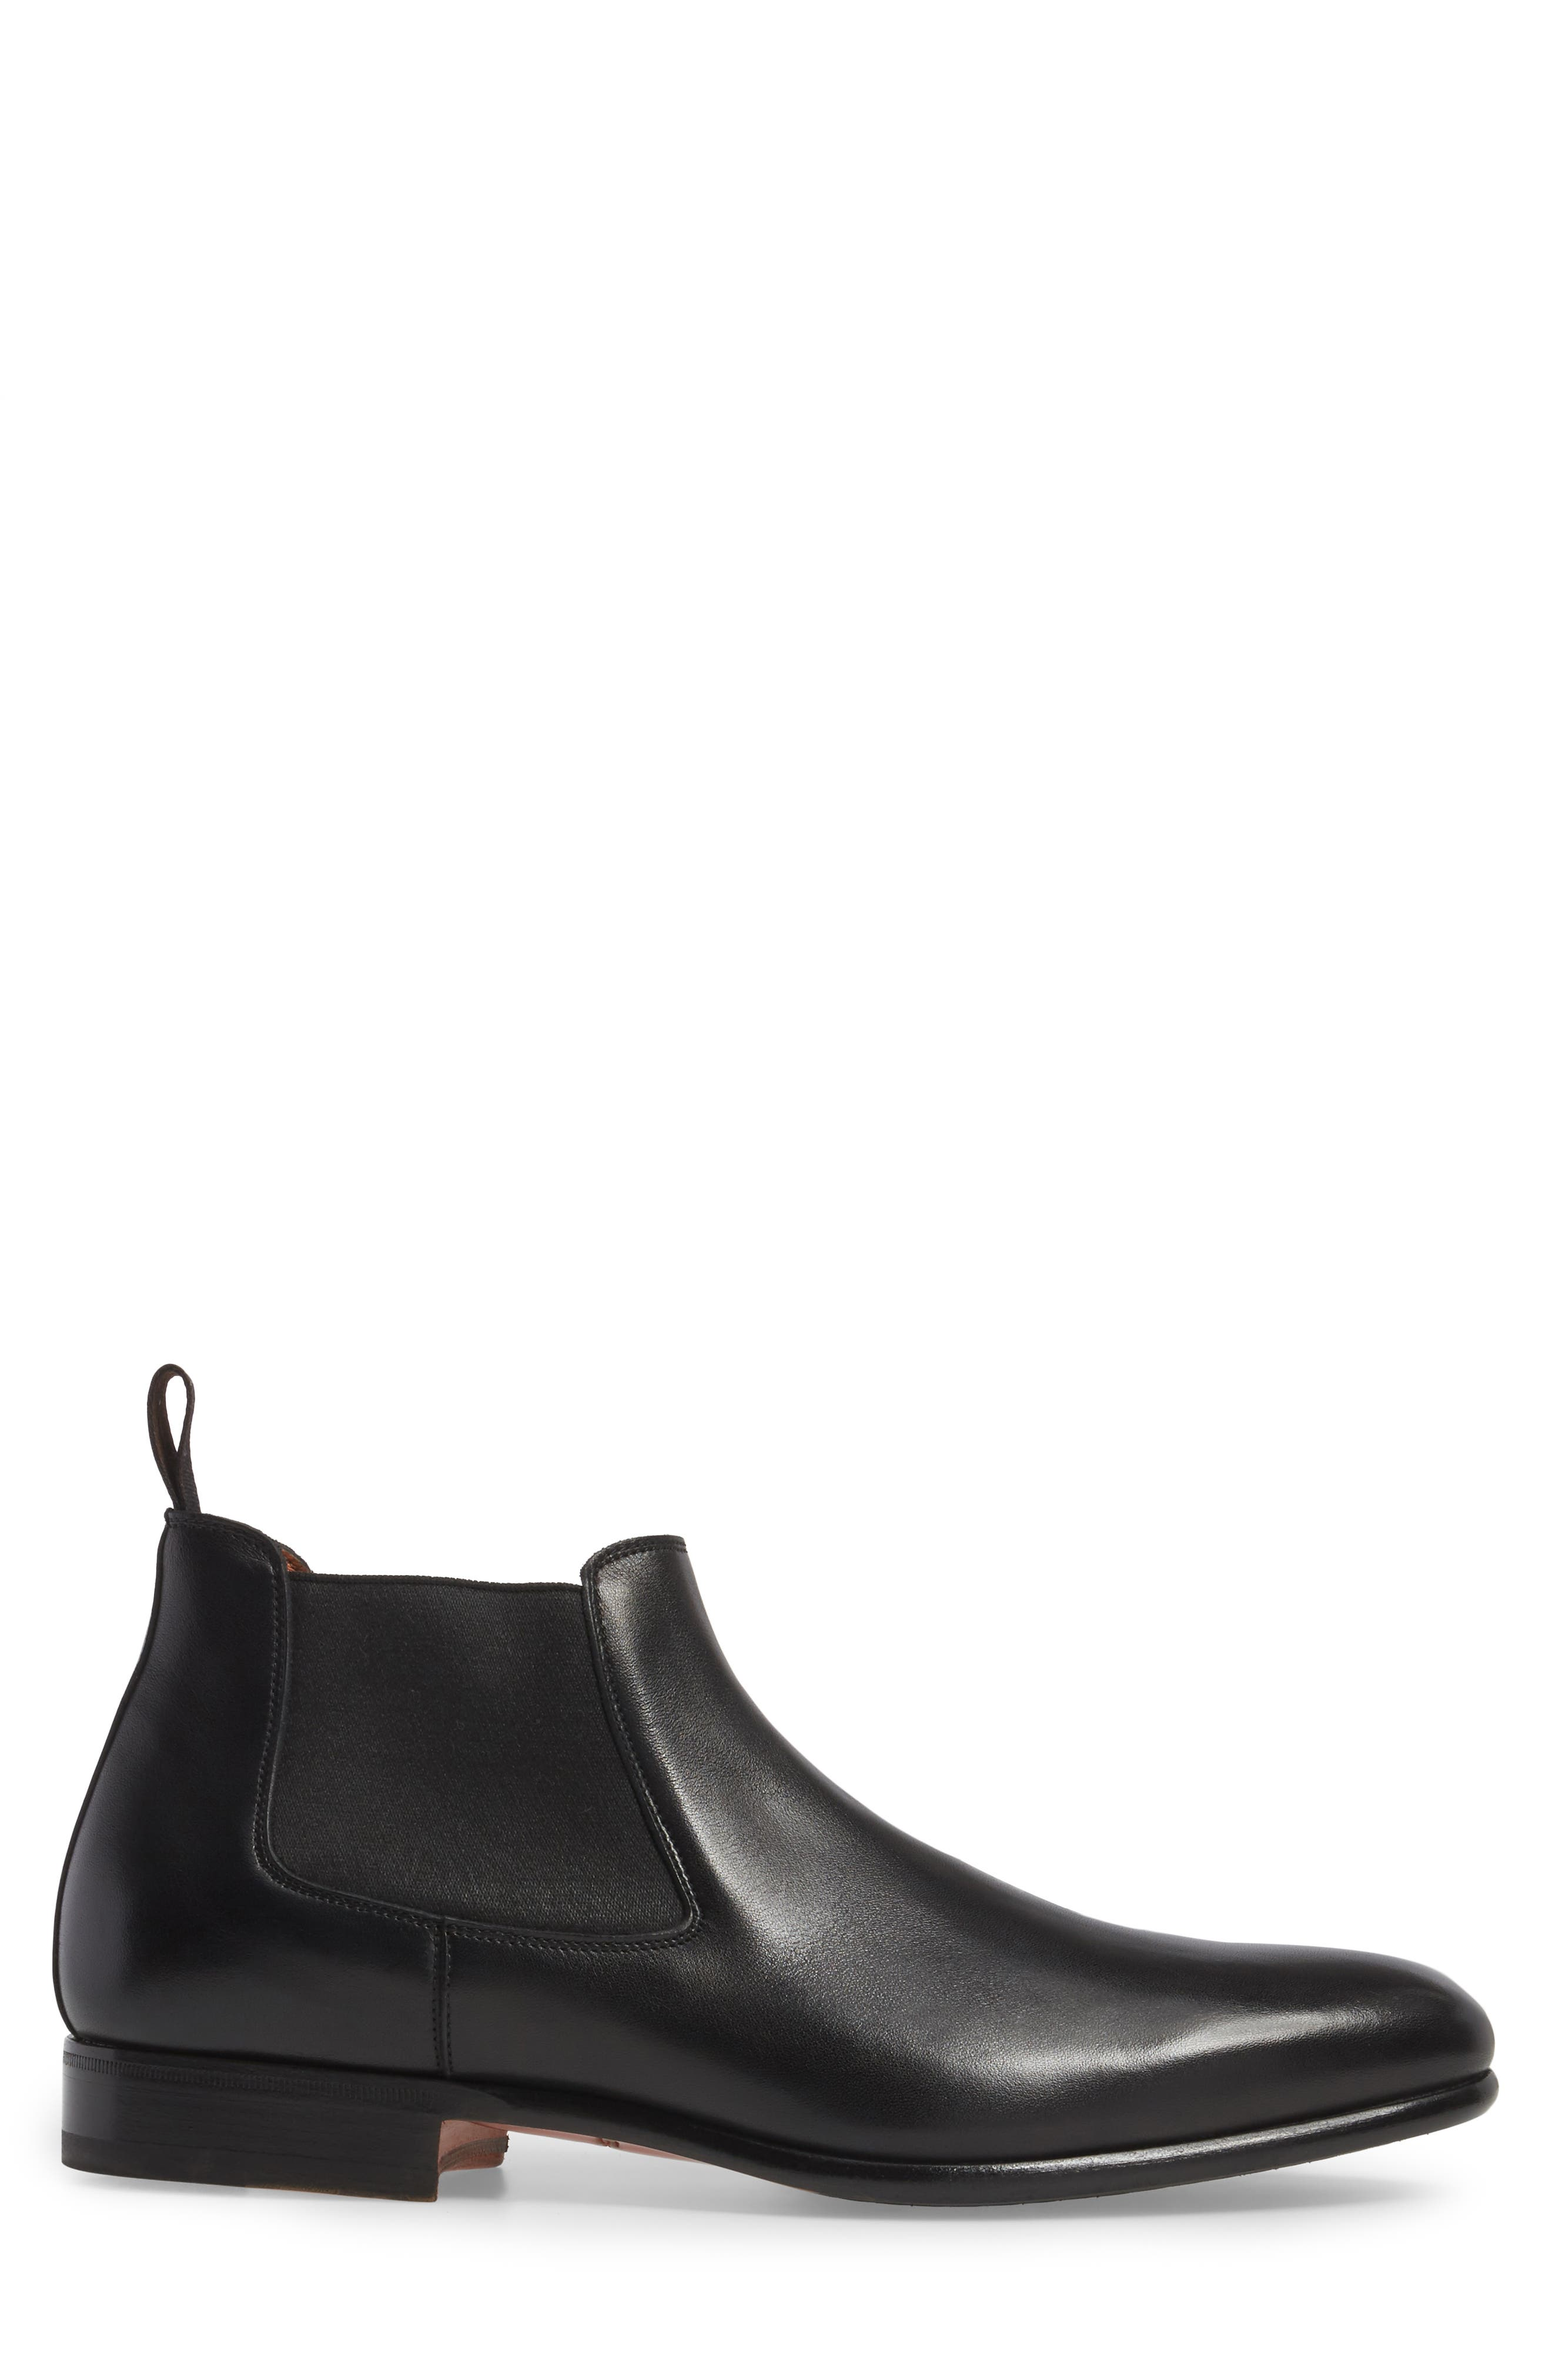 Gunther Chelsea Boot,                             Alternate thumbnail 3, color,                             Black Leather